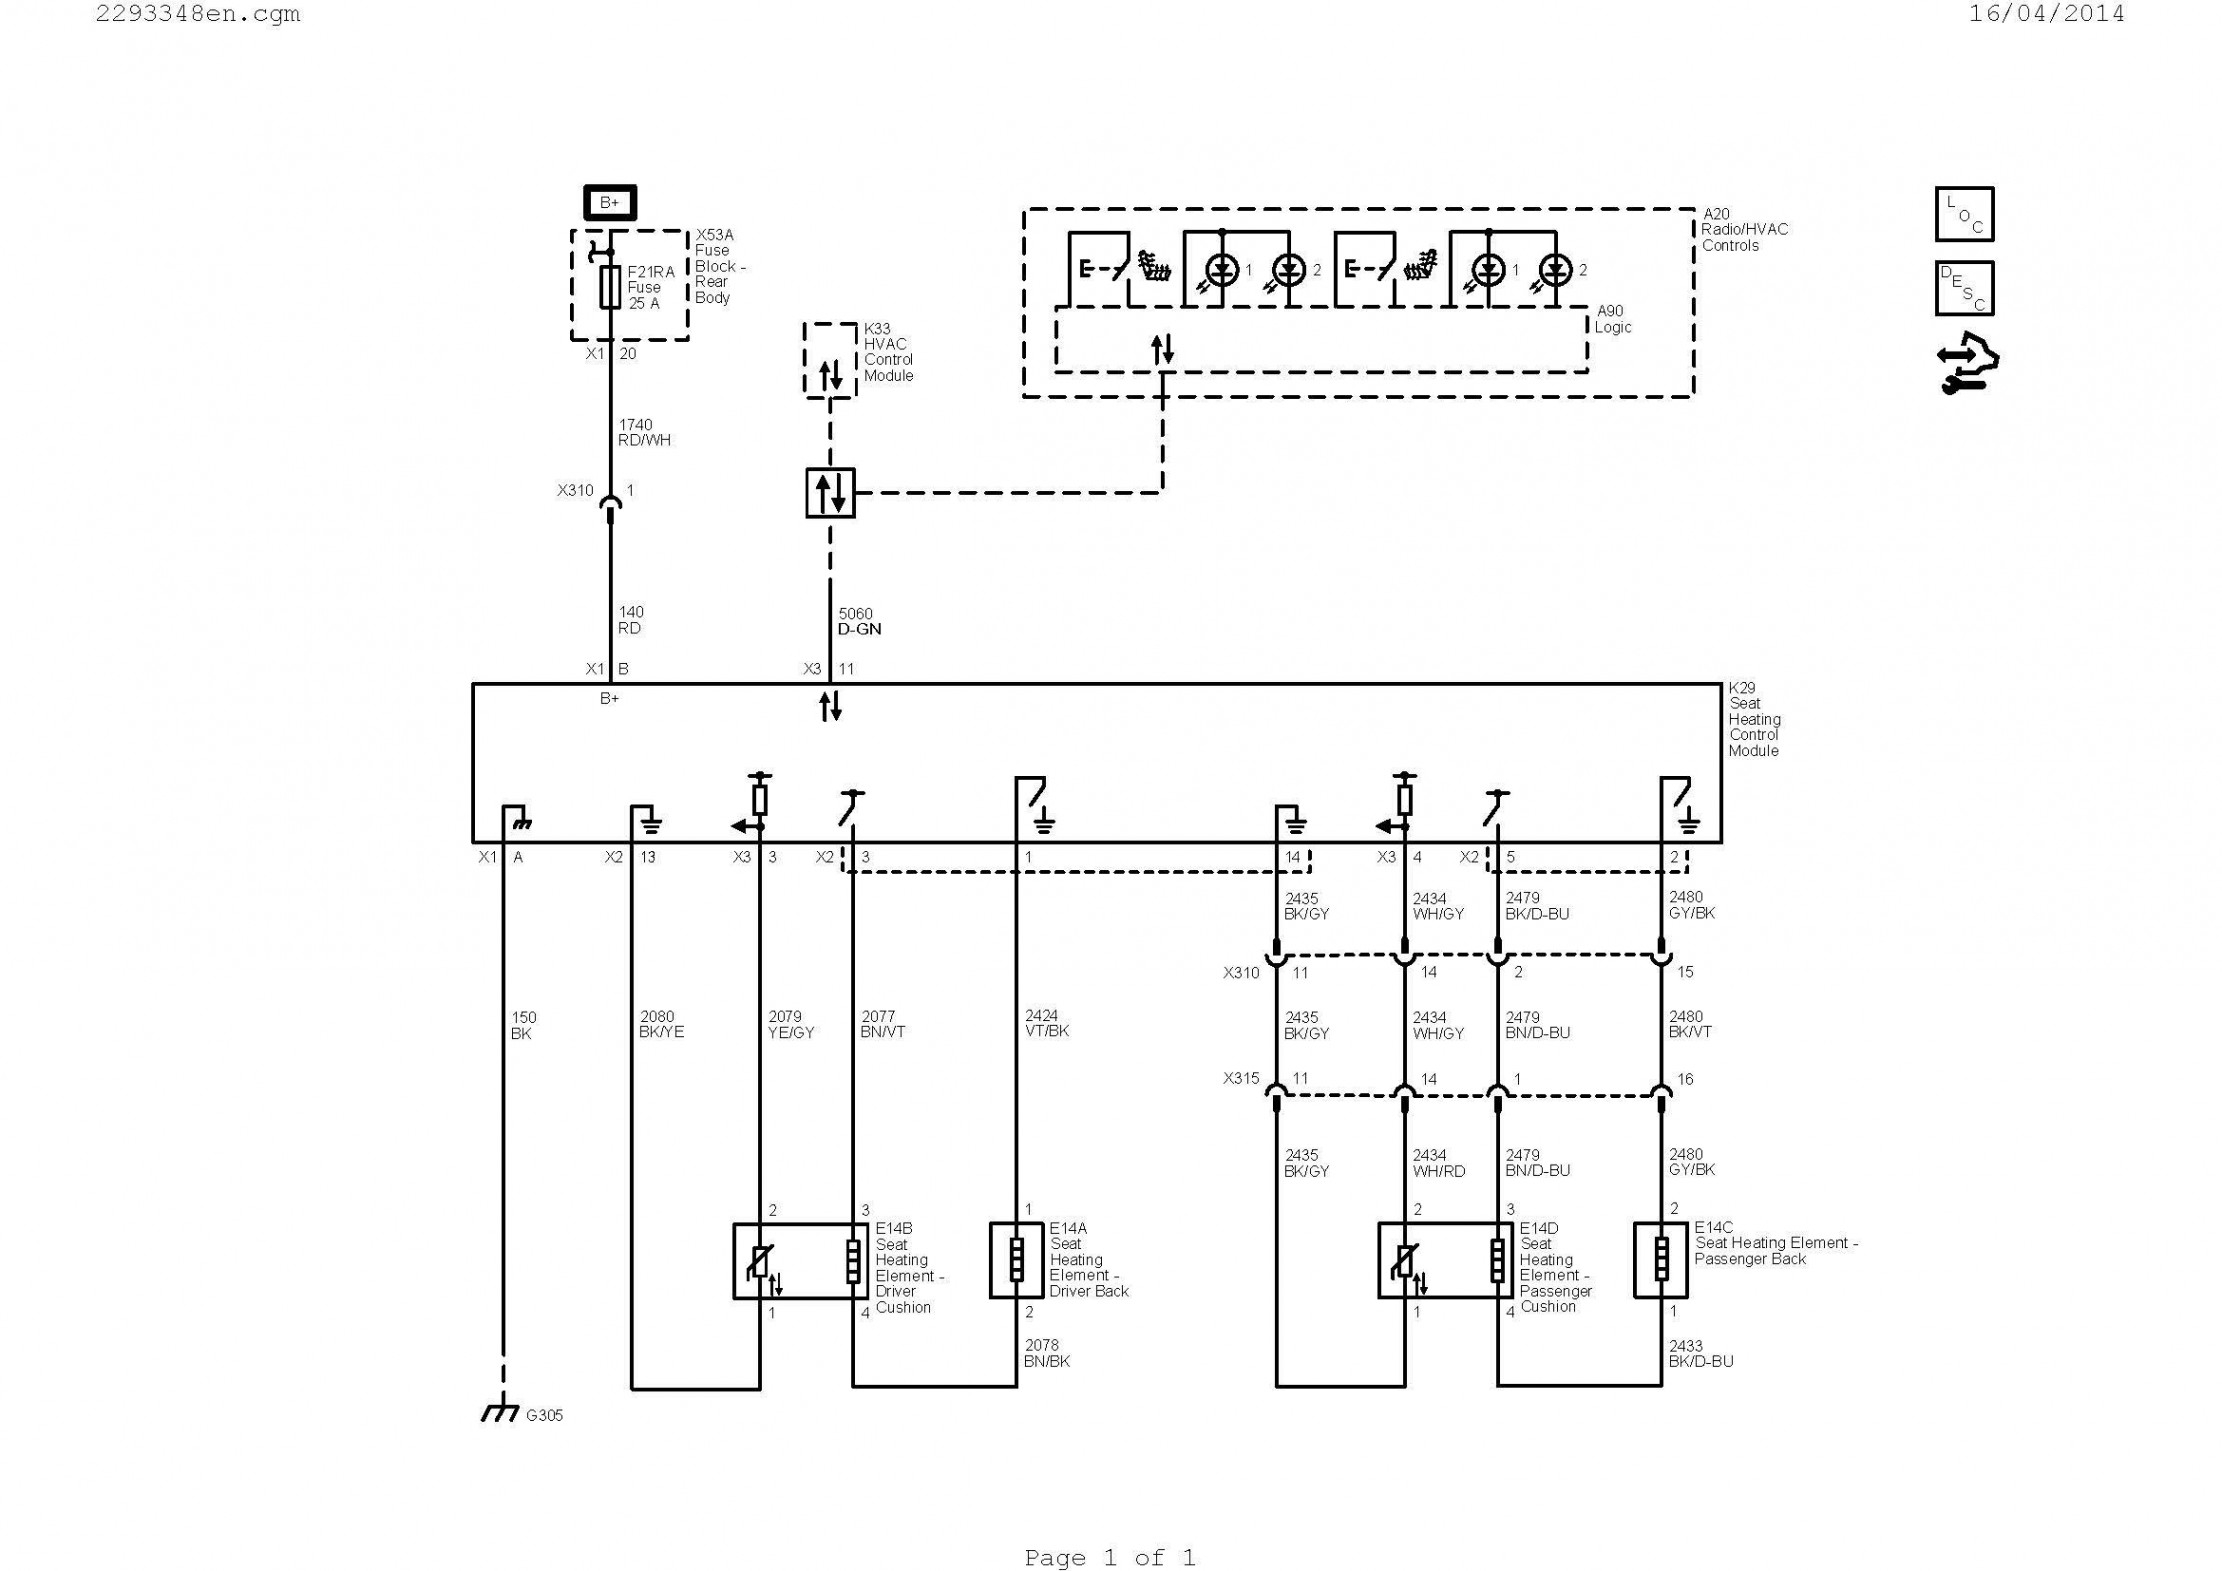 aiphone db 1md wiring diagram Download-What Is A Phase Diagram – Diagram A Unique Plug Diagram Lovely 10 AiPhone Db 1md 2-i